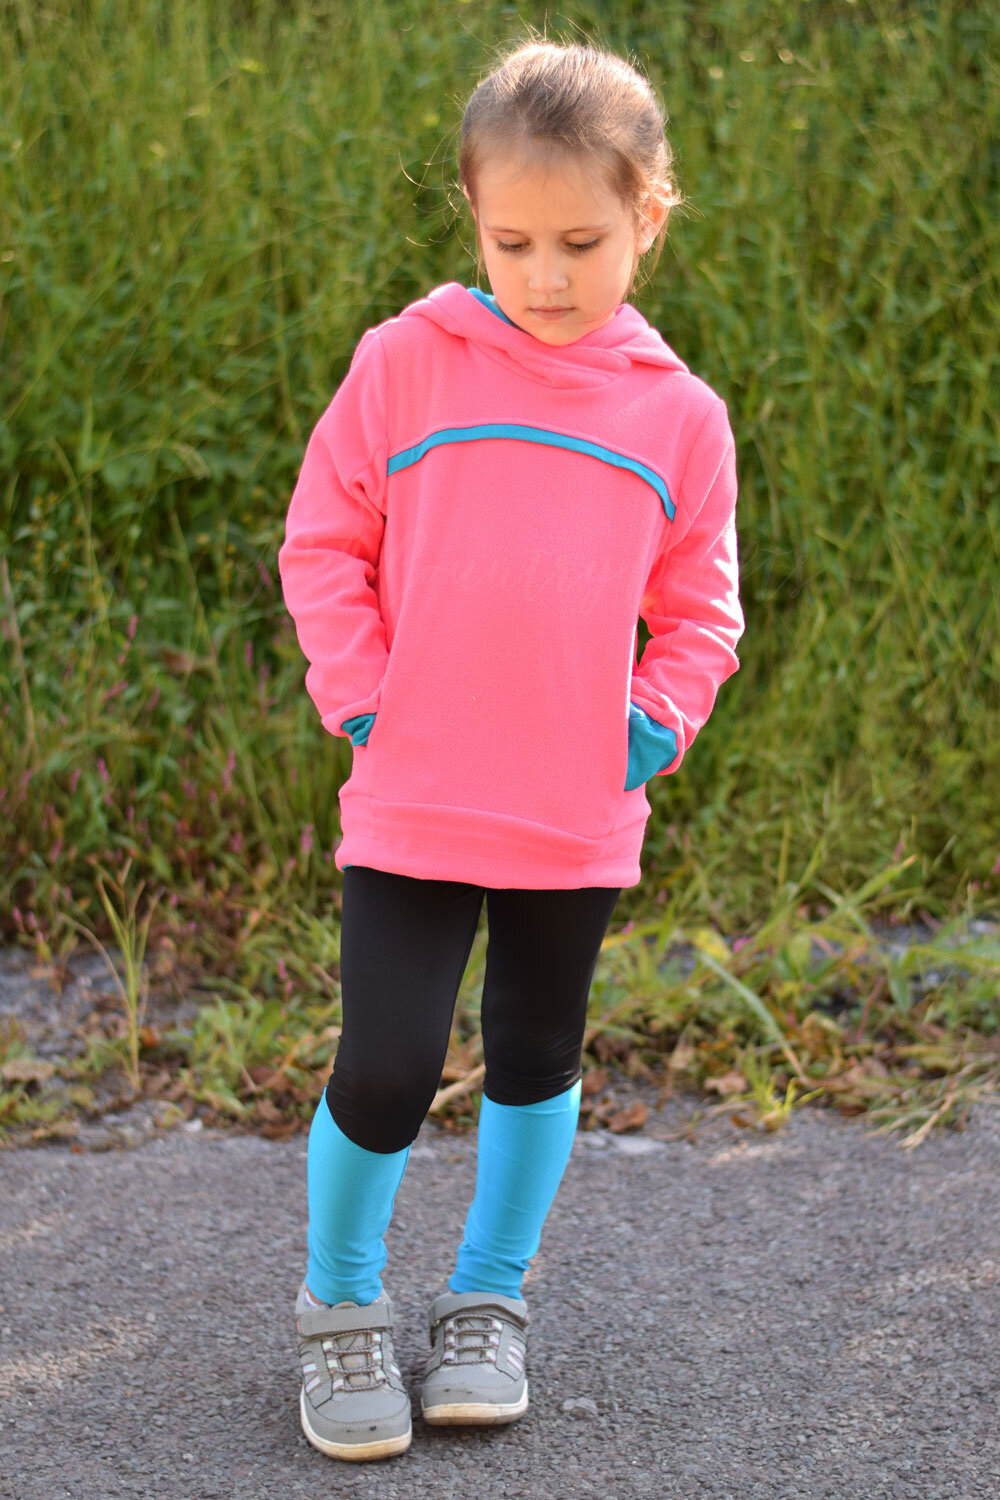 The new Sofiona Designs Bonfire hoodie pairs perfectly with the Rocky Shore tights!